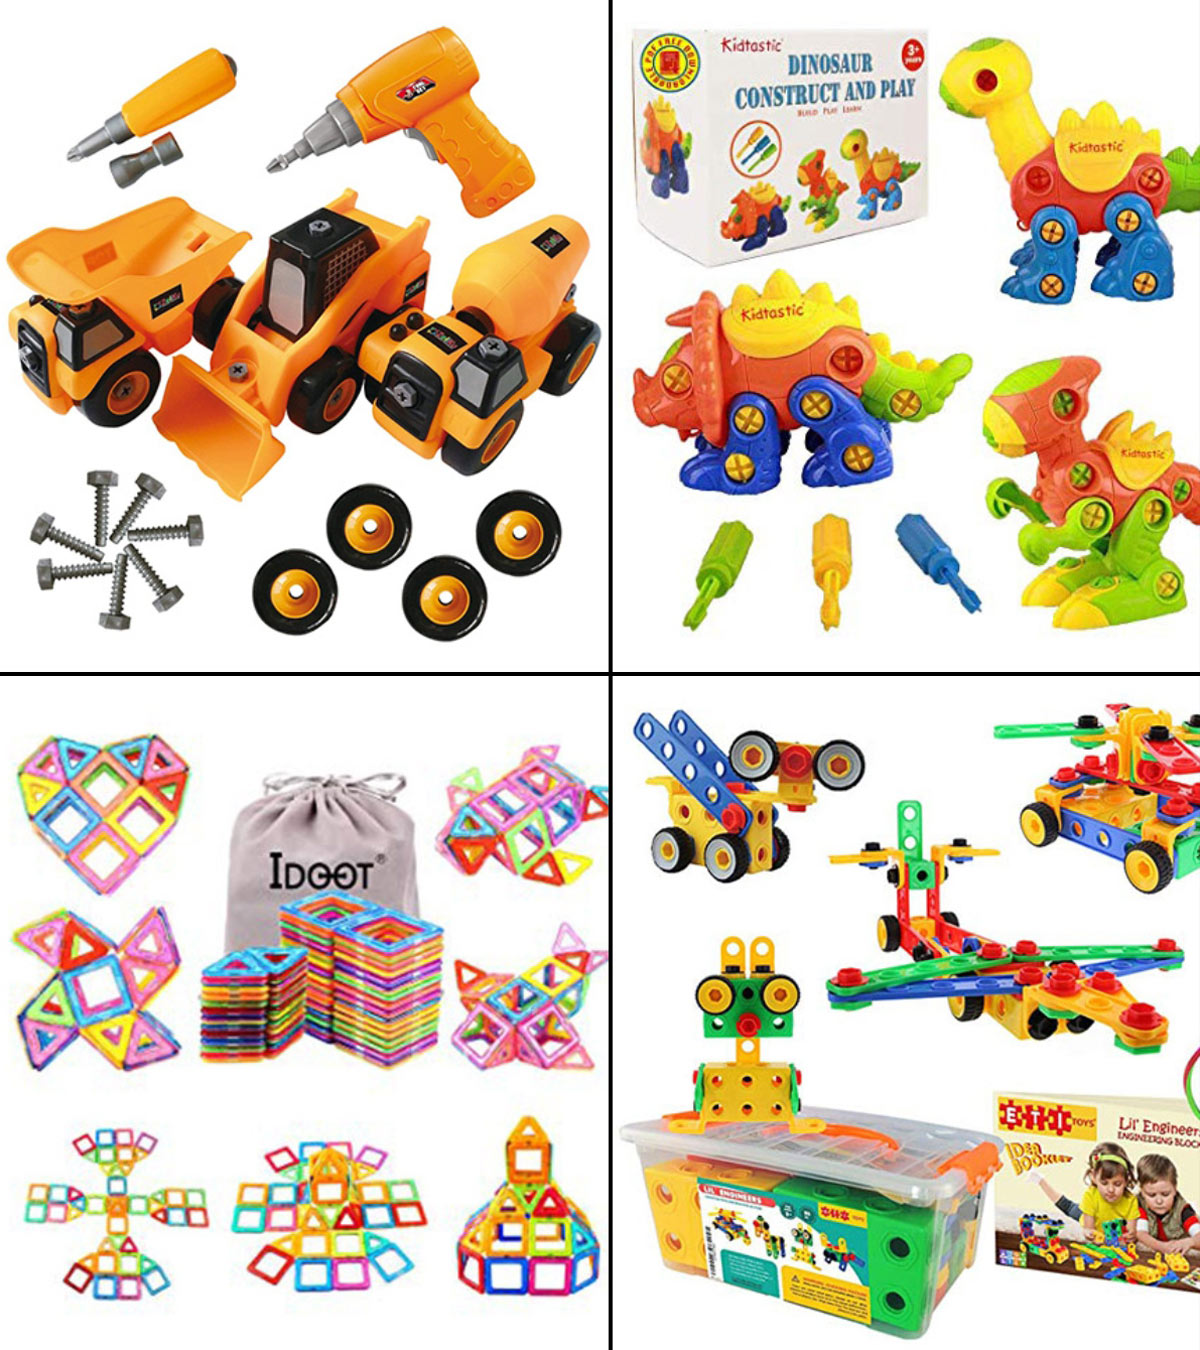 12 Best Building Sets For Kids To Buy In 2021